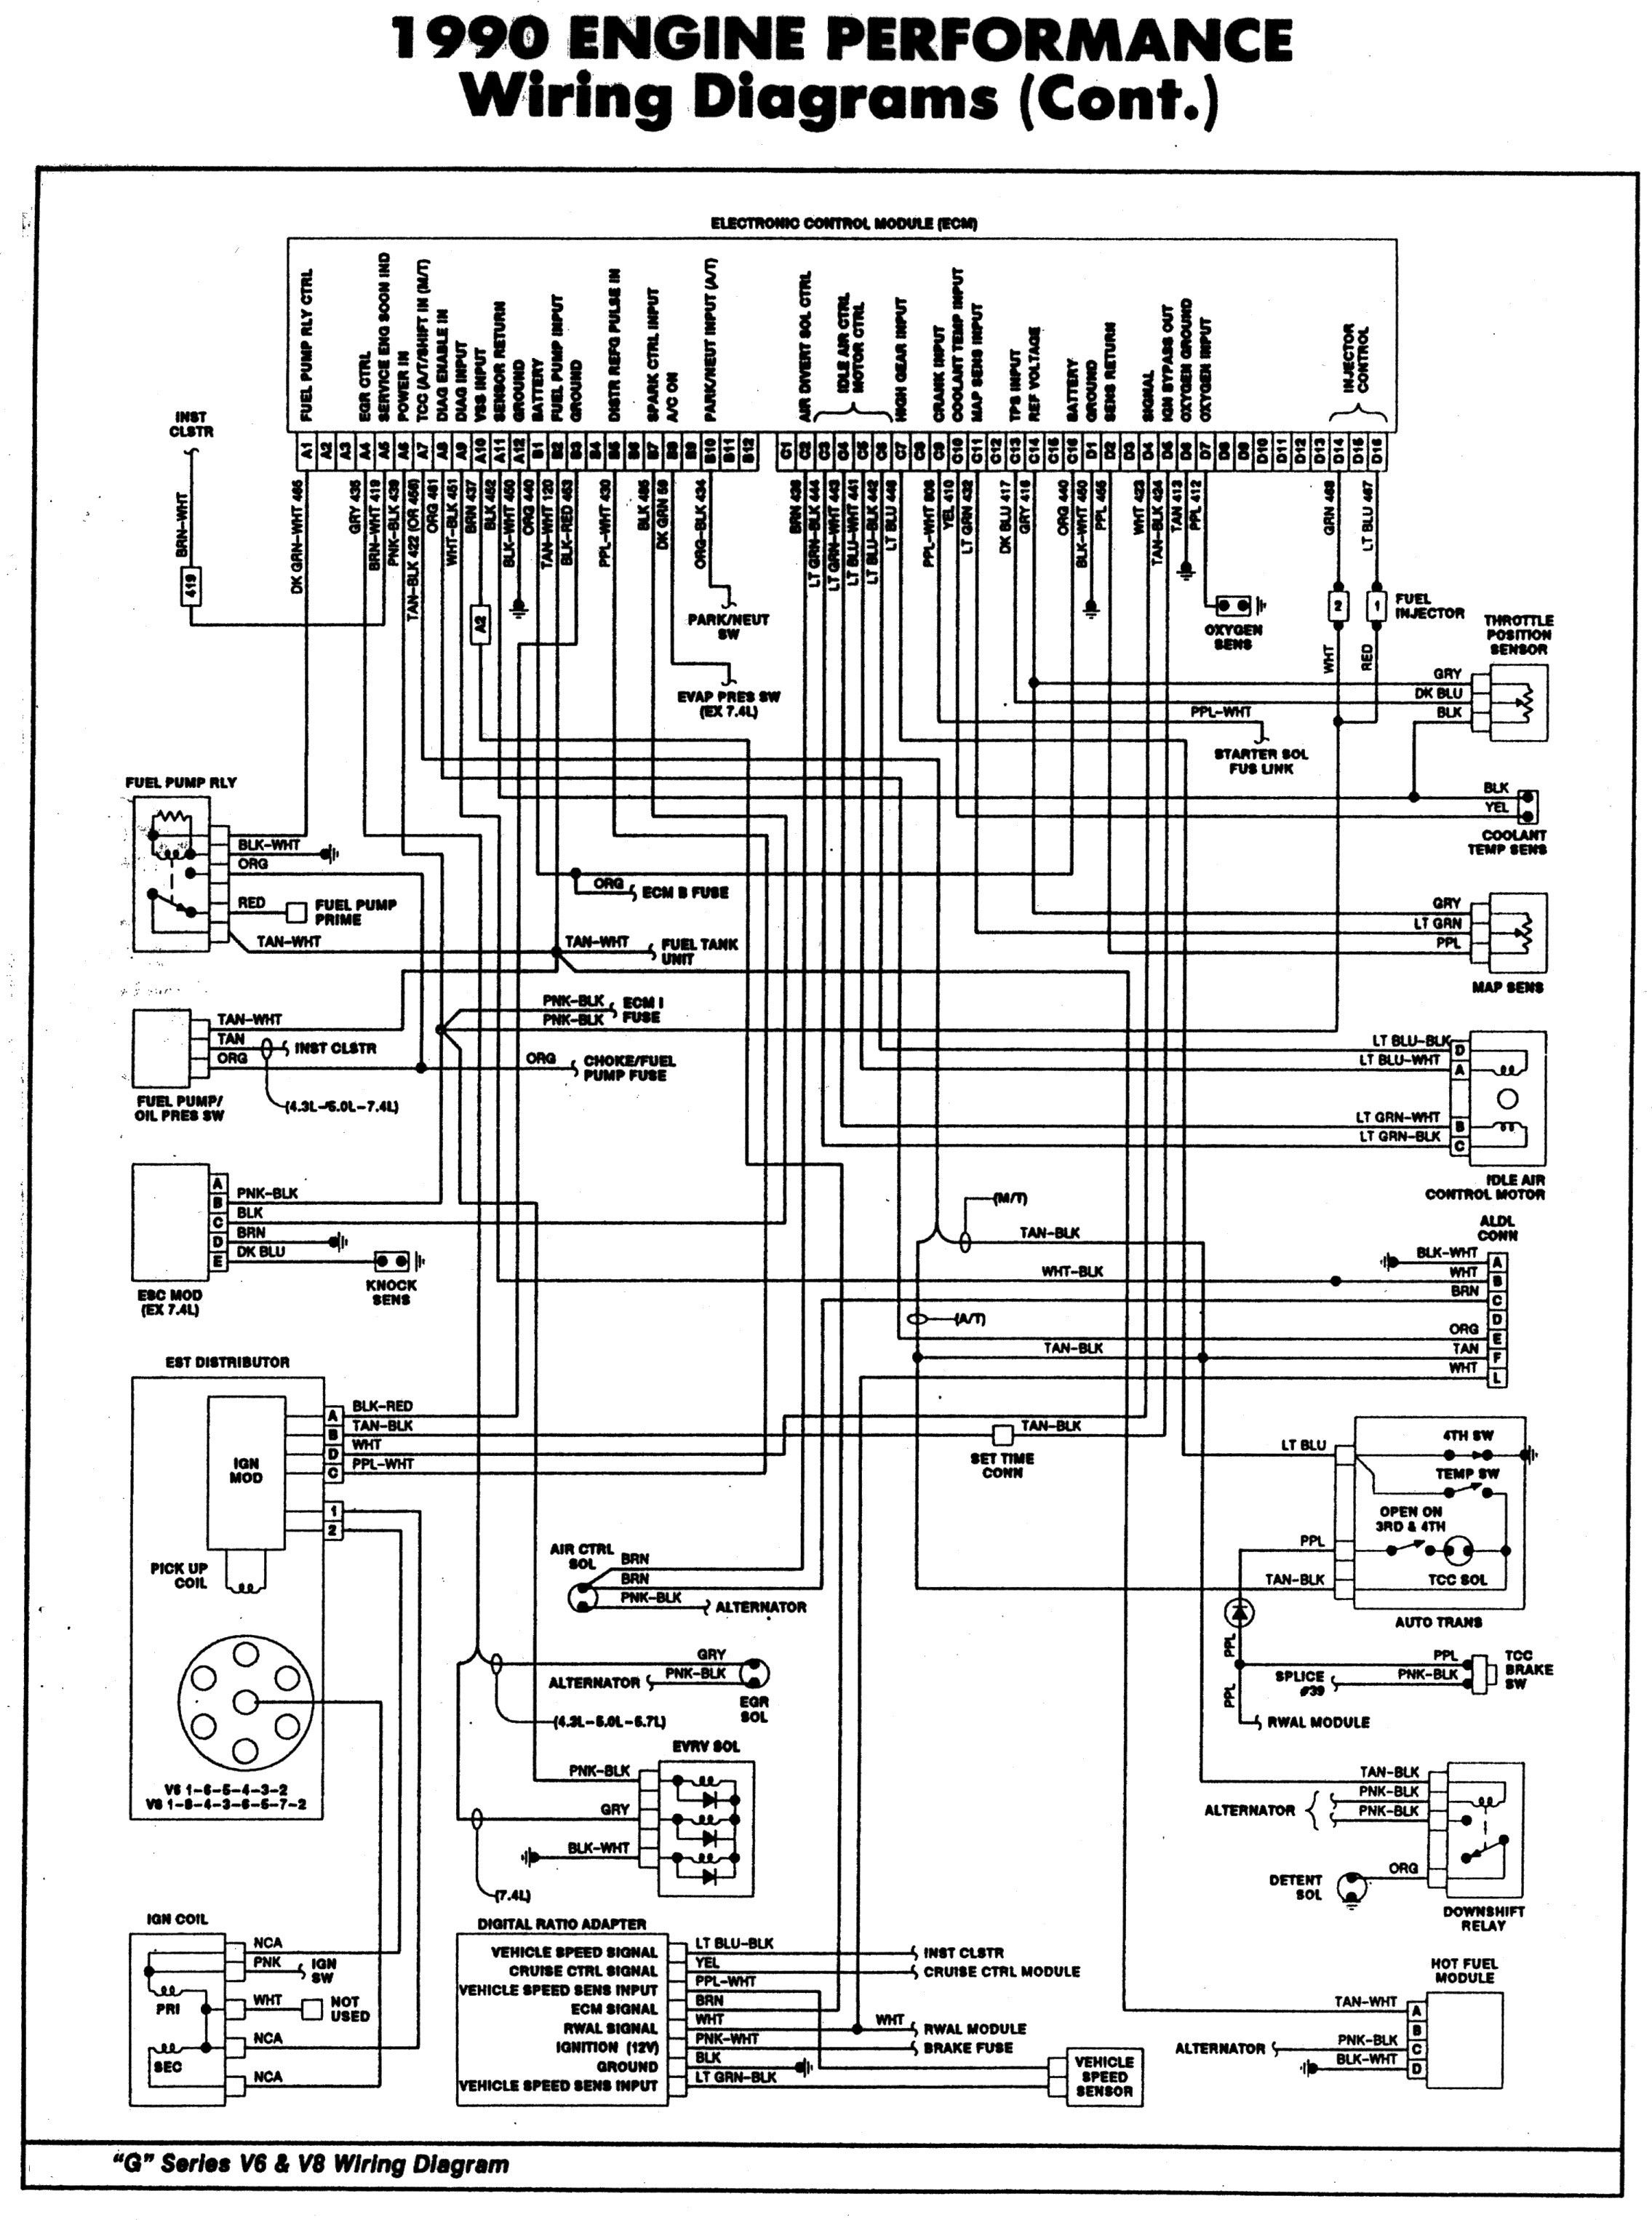 1994 Chevy Pickup Wiring Diagram - 10.geuzencollege-examentraining.nl on transmission diagram, ecm repair, john deere snowblower parts diagram, clutch diagram, horn diagram, sensor diagram, ecm motor, ignition diagram, starter diagram, ecm pin diagram, wiper motor diagram, fuel injection diagram, microprocessor diagram, ecm computer diagram, radiator fan diagram, fuel system diagram, spark plugs diagram, power window diagram, code diagram, fuel pump diagram,